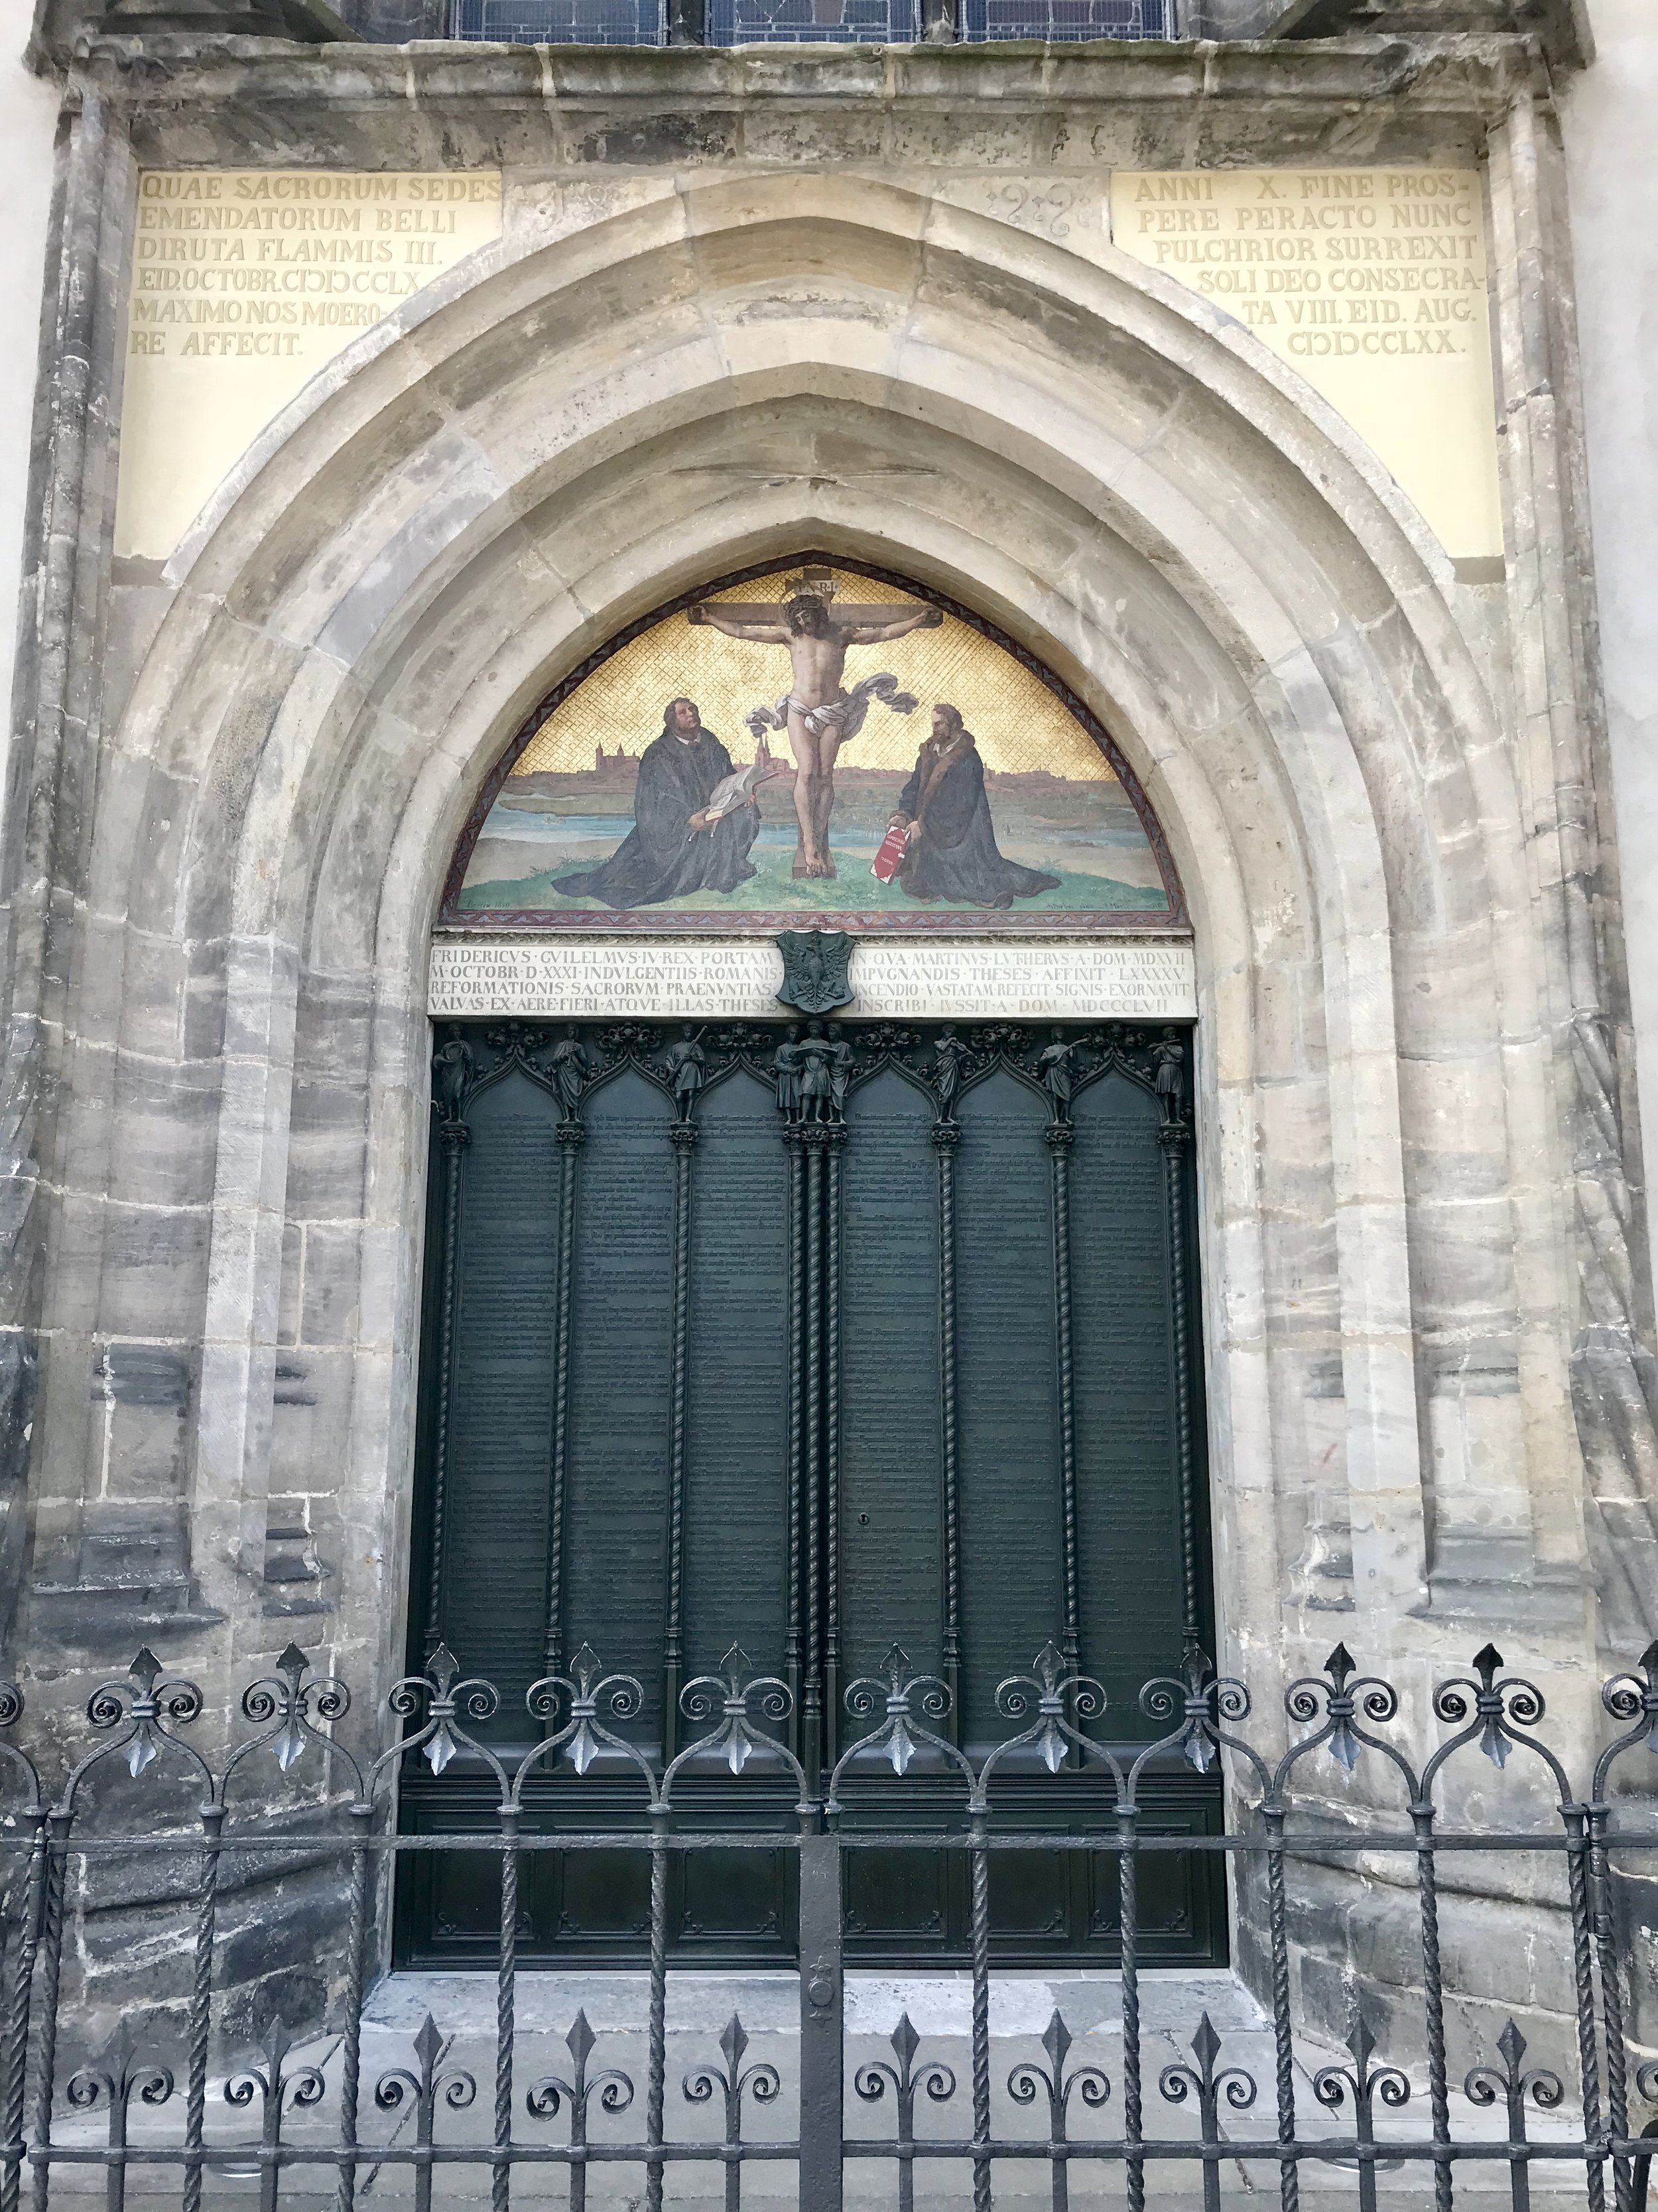 Doors of the Schlosskirche with inscriptions of the 95 Theses, rebuilt following a fire.